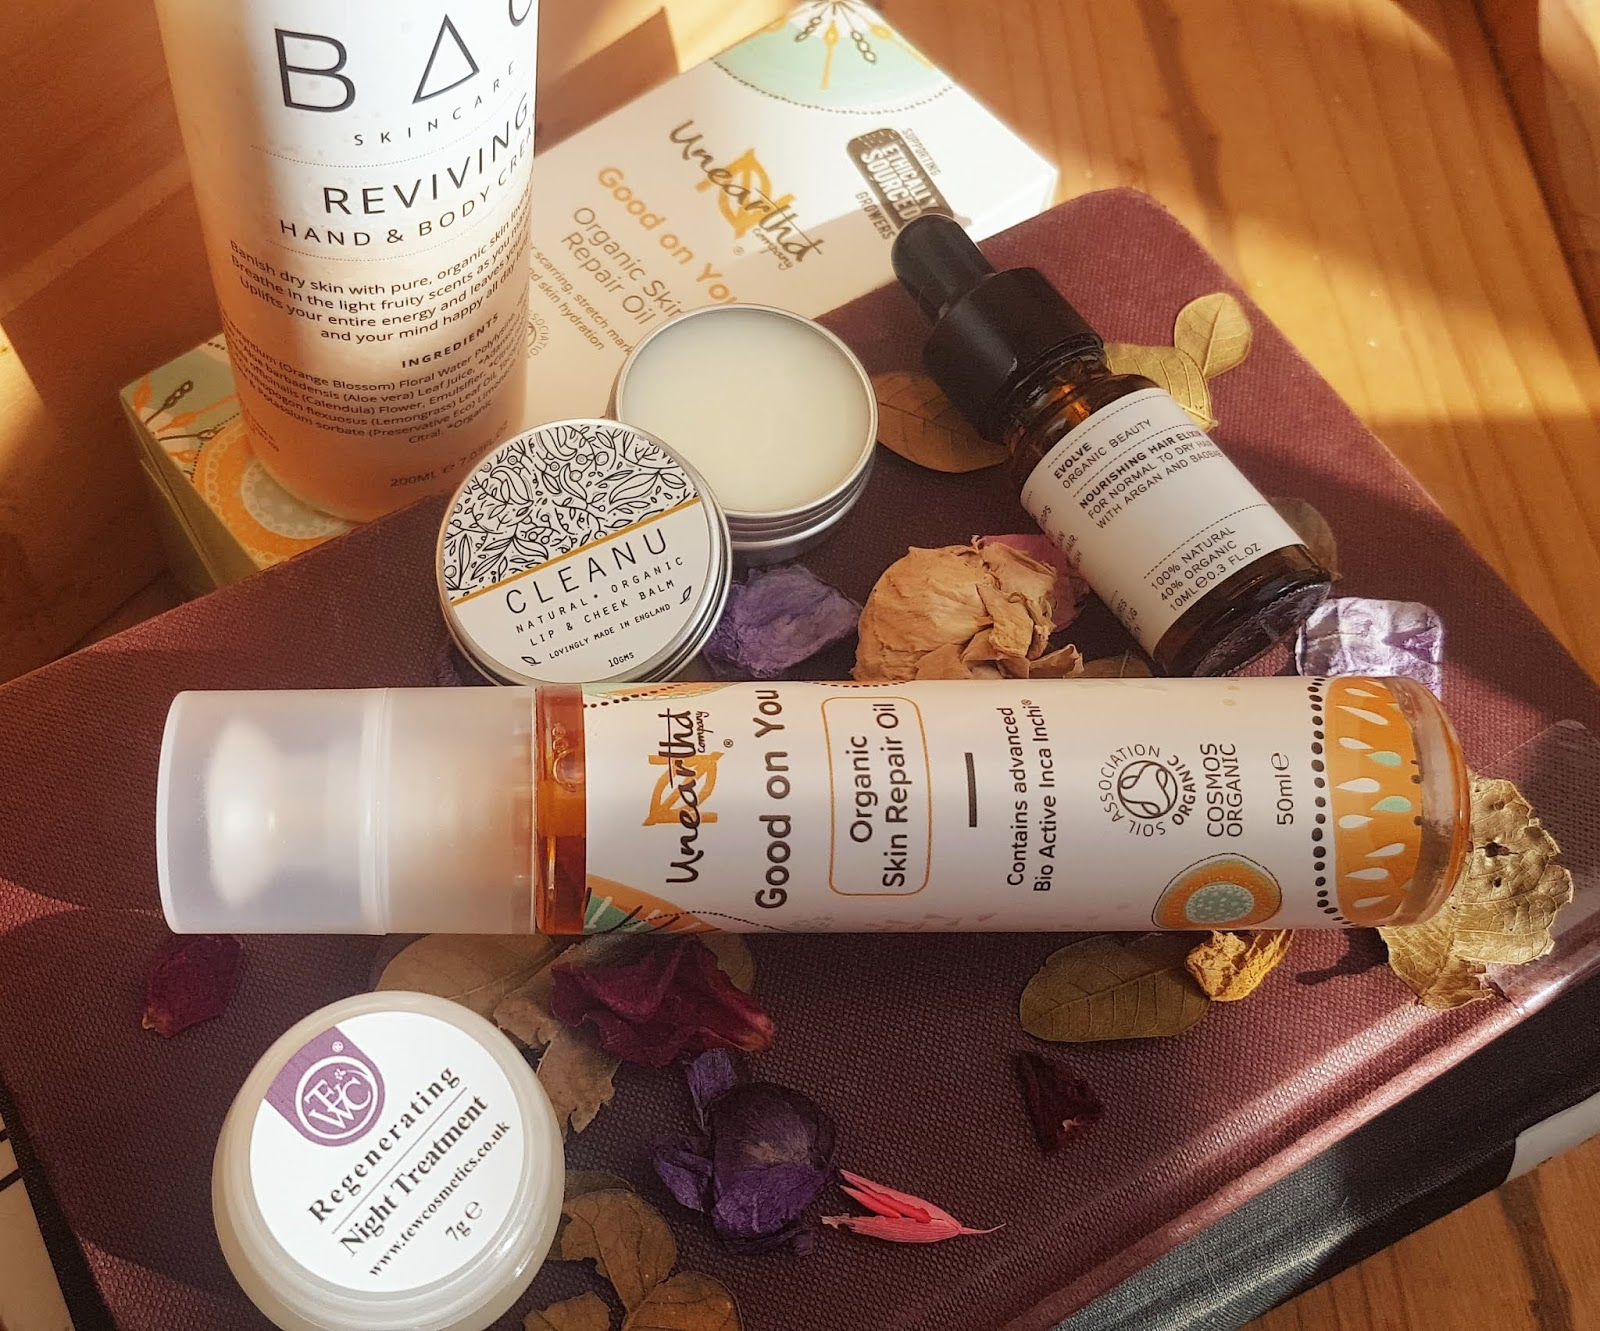 The Natural Beauty Box February subscription products